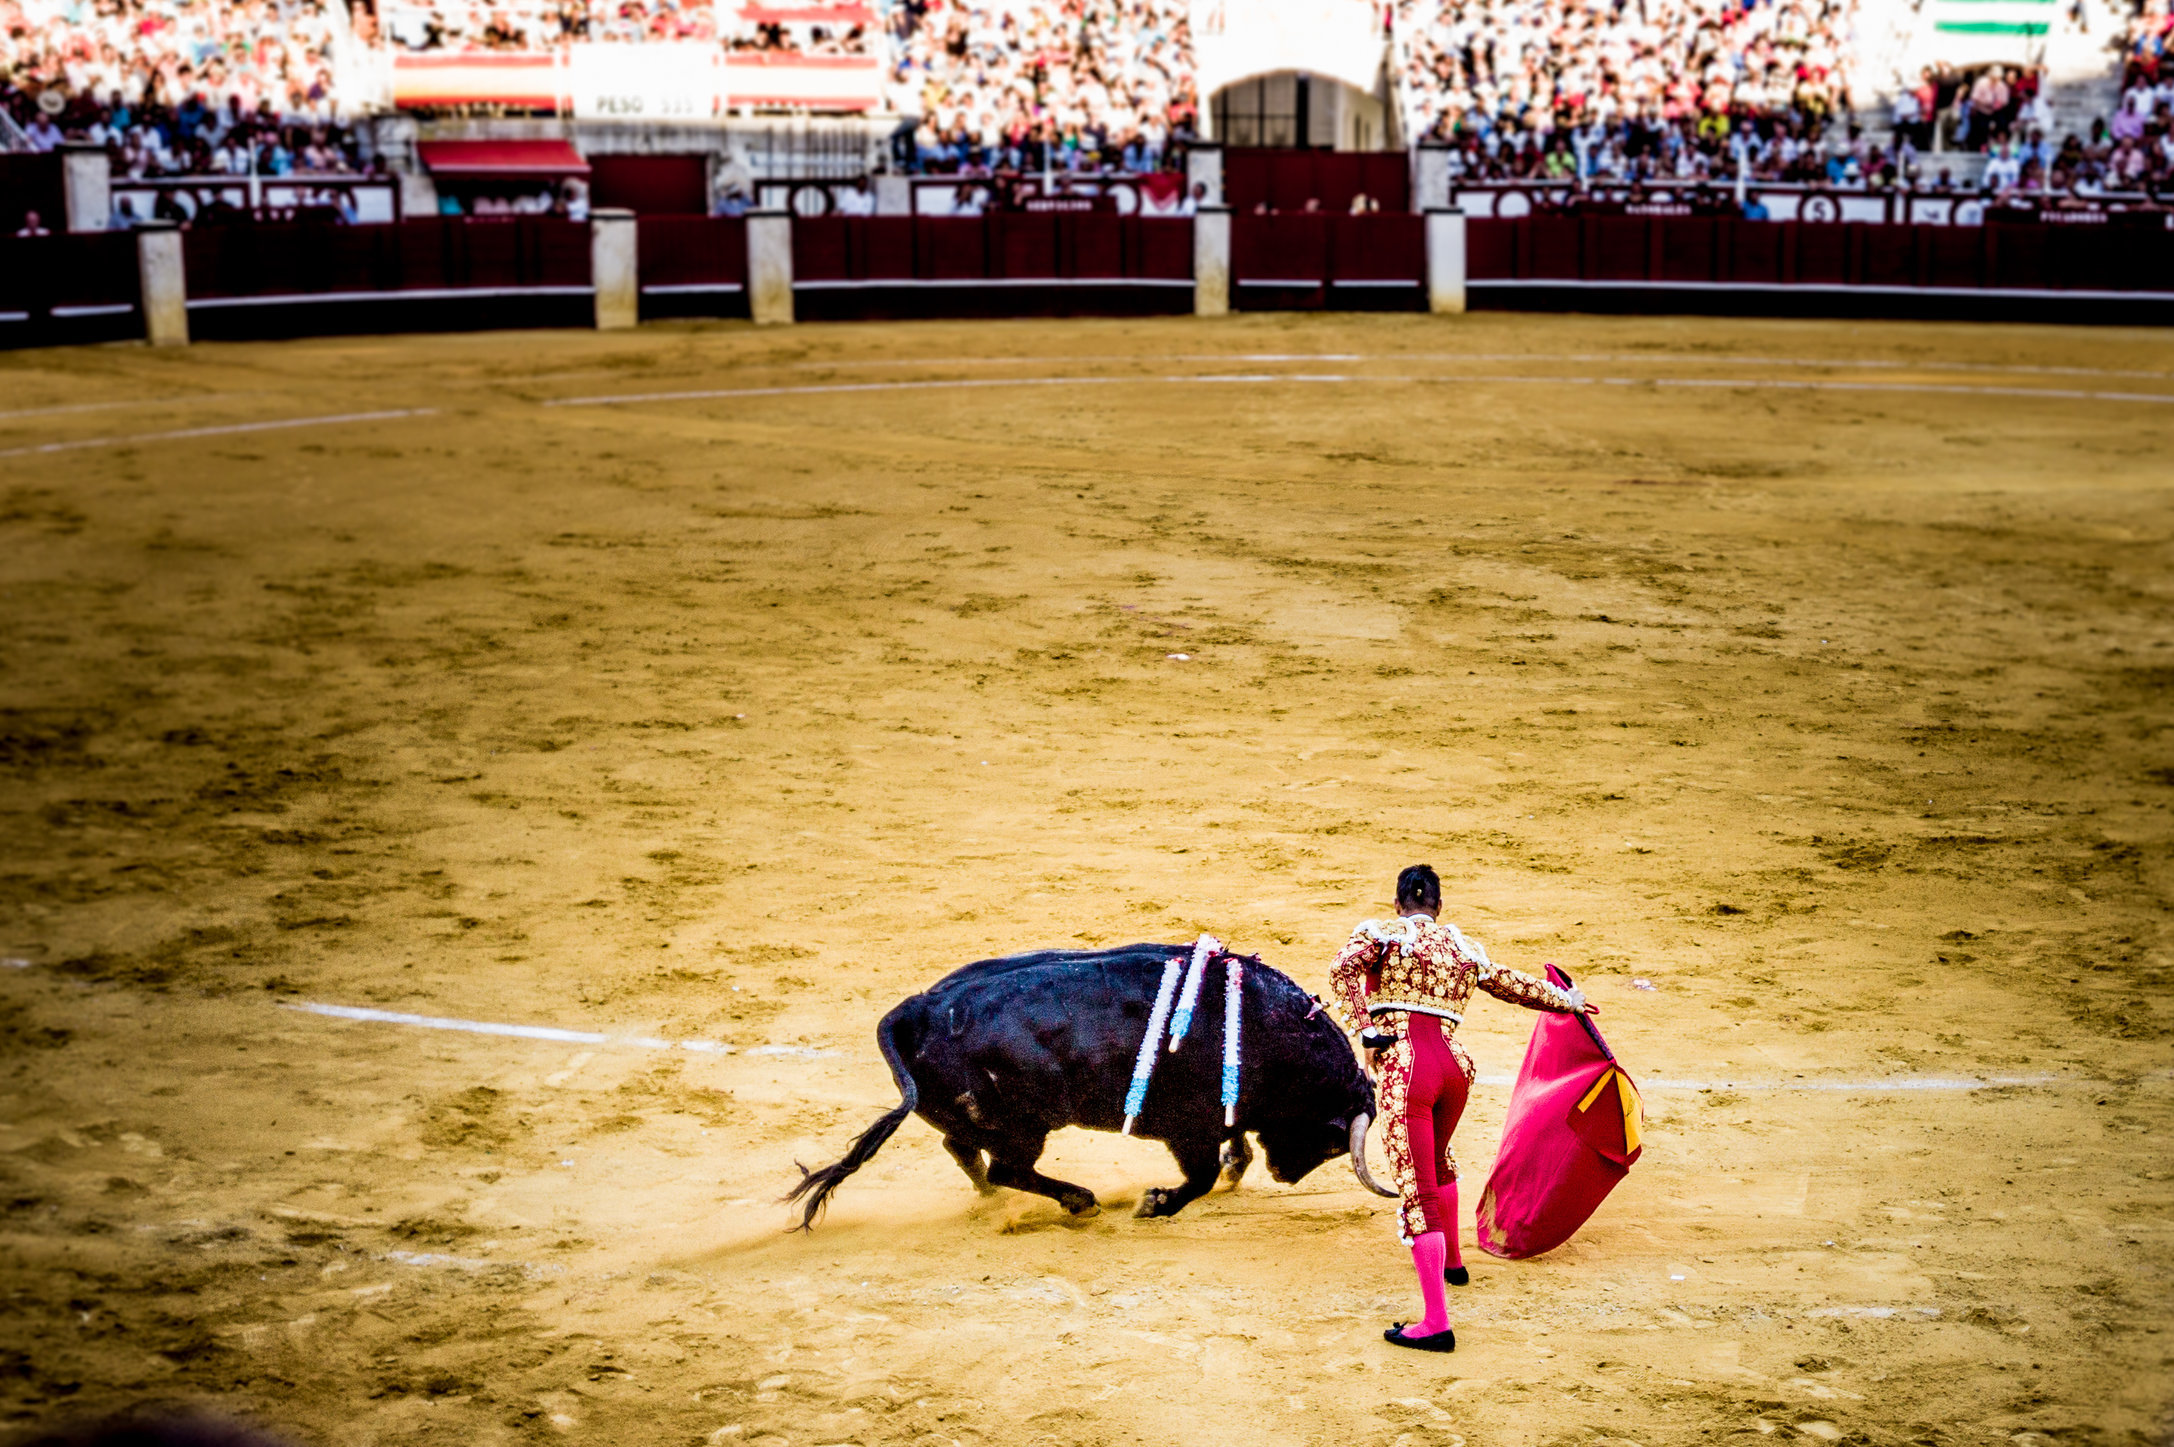 The Bullfight-92.jpg